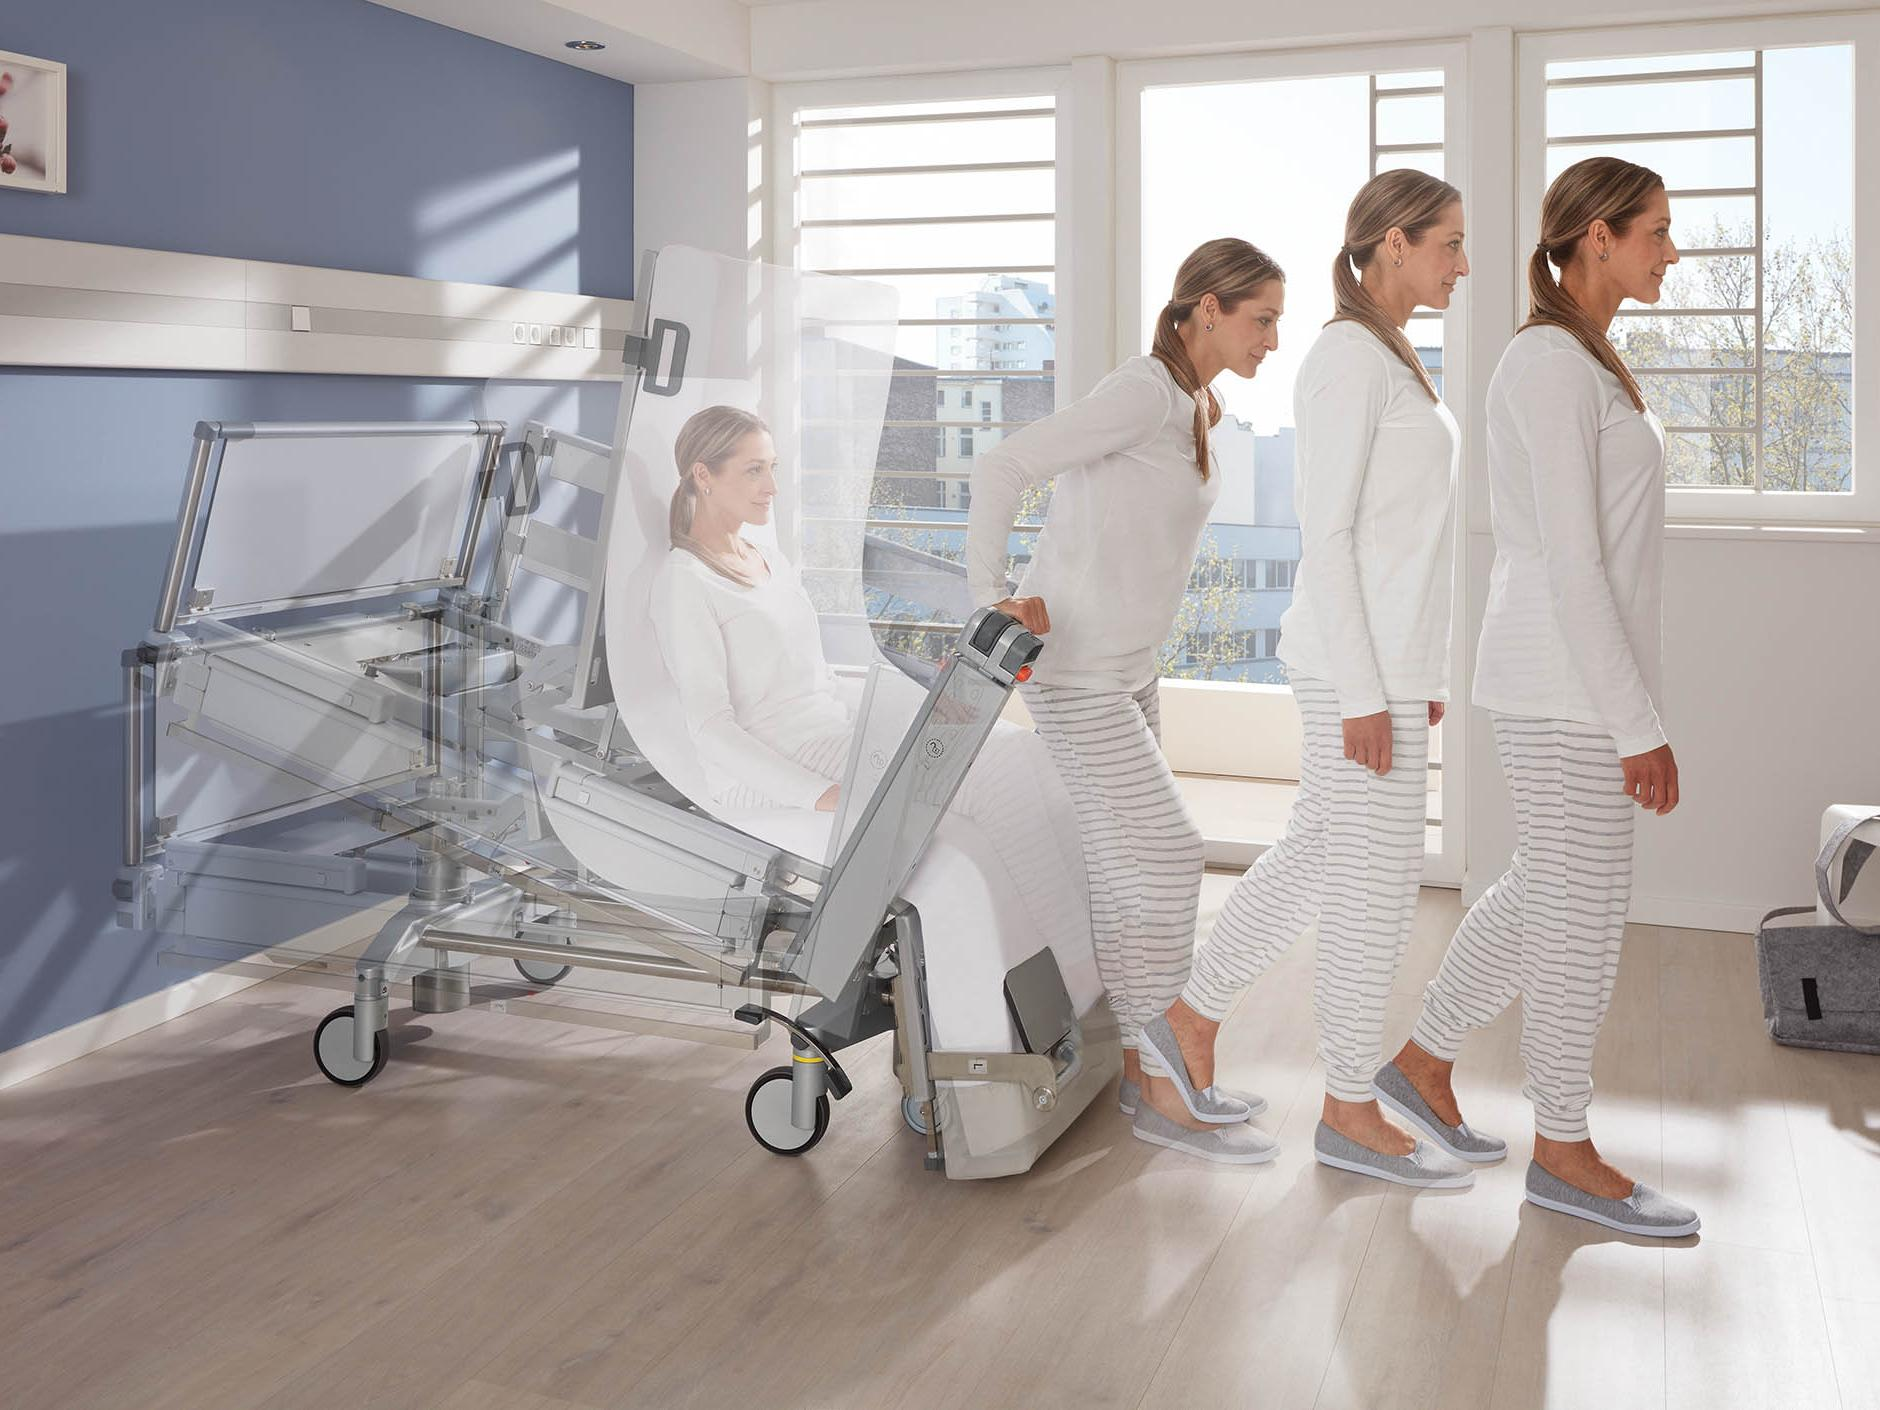 The Vertica clinic mobilisation bed promotes ergonomic movement